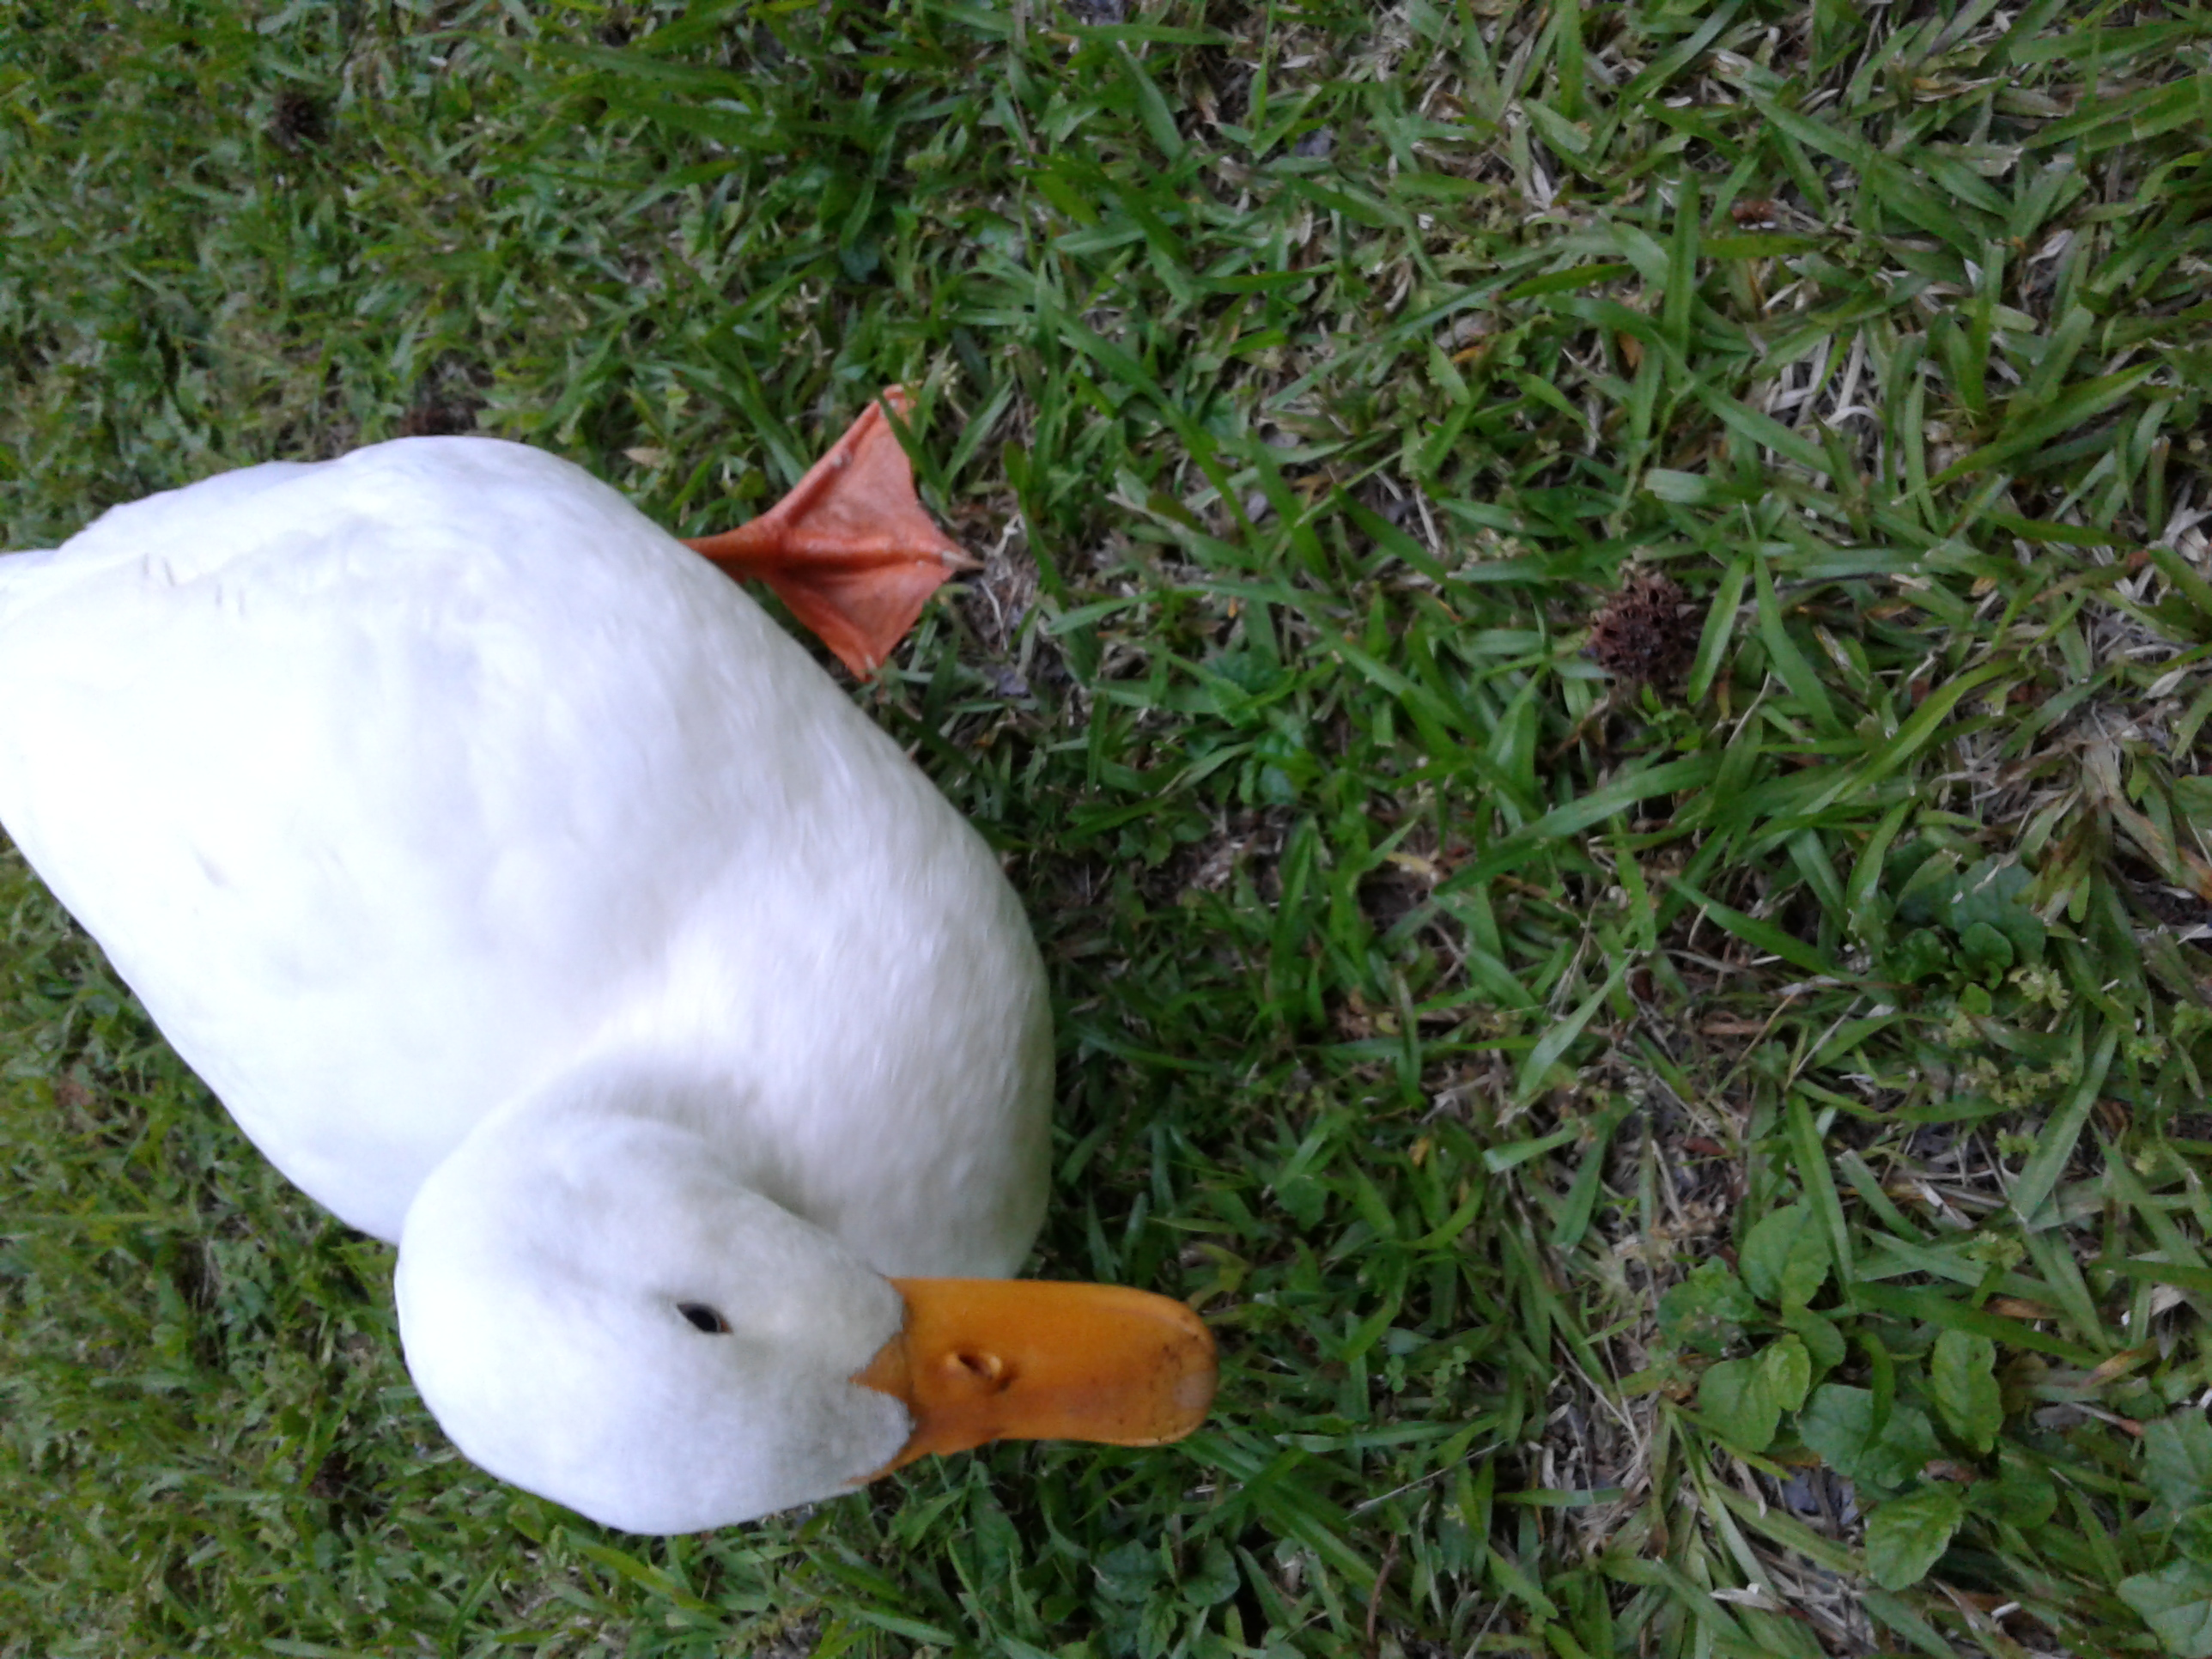 Do you accept ducks too? If so, this is my pet Donald. I know ducks aren't in Minecraft, but it could easily work as a reskin for the chicken.